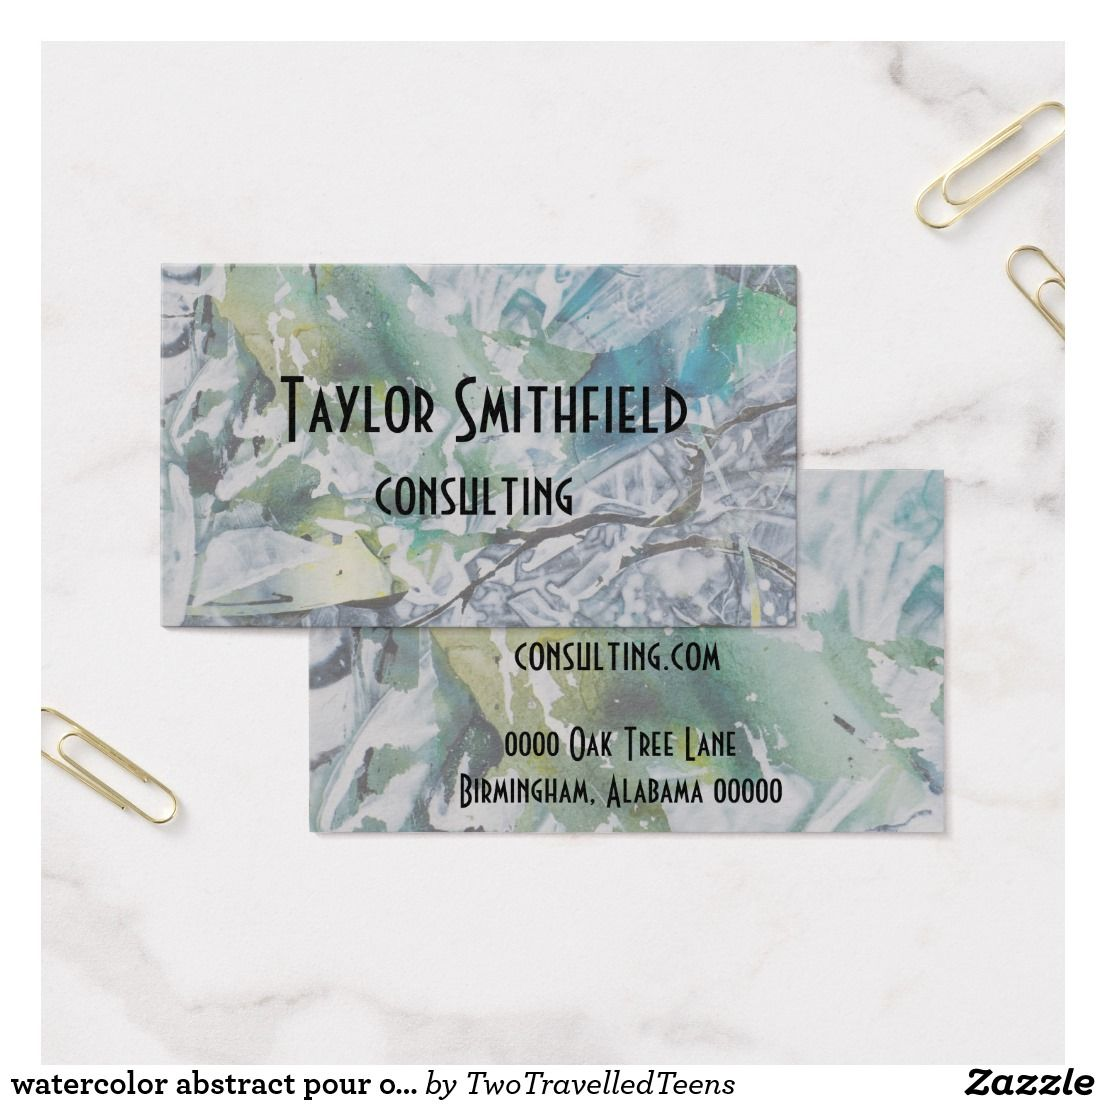 watercolor abstract pour over paint business card | Business Card ...